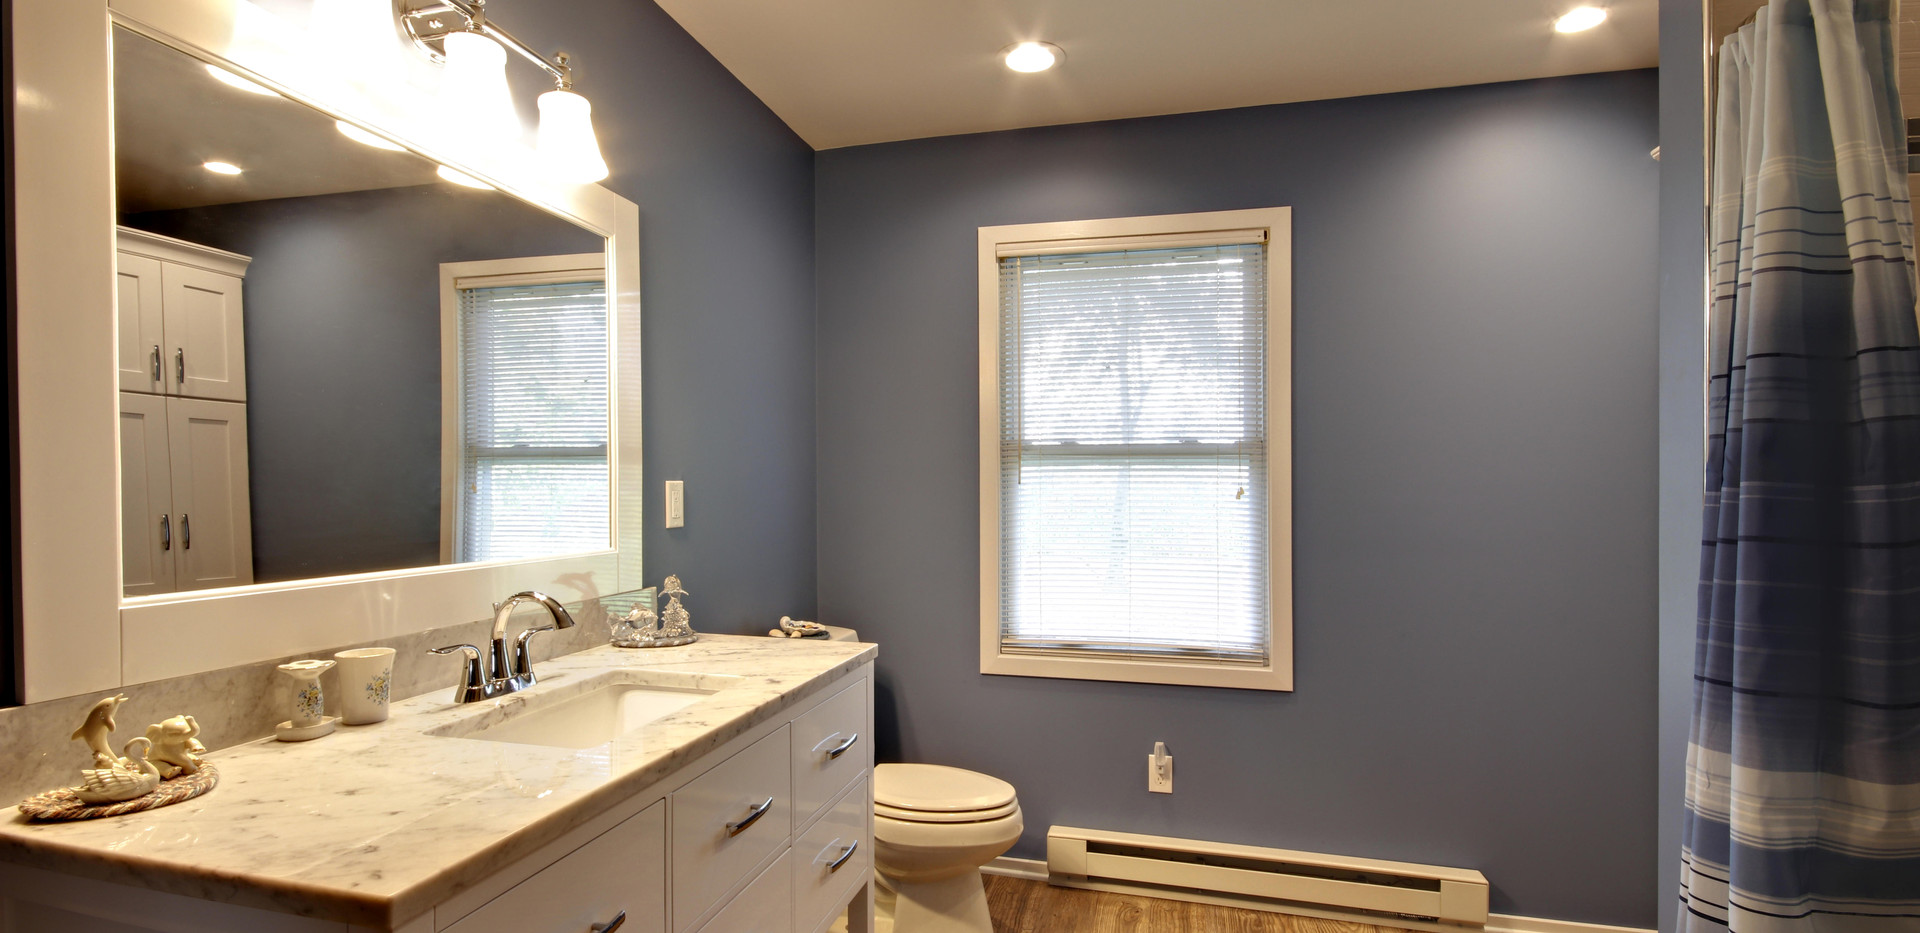 Hudsonville bathroom remodel project featuring new vanity, paint, tile shower with grab bars, and cabinet space